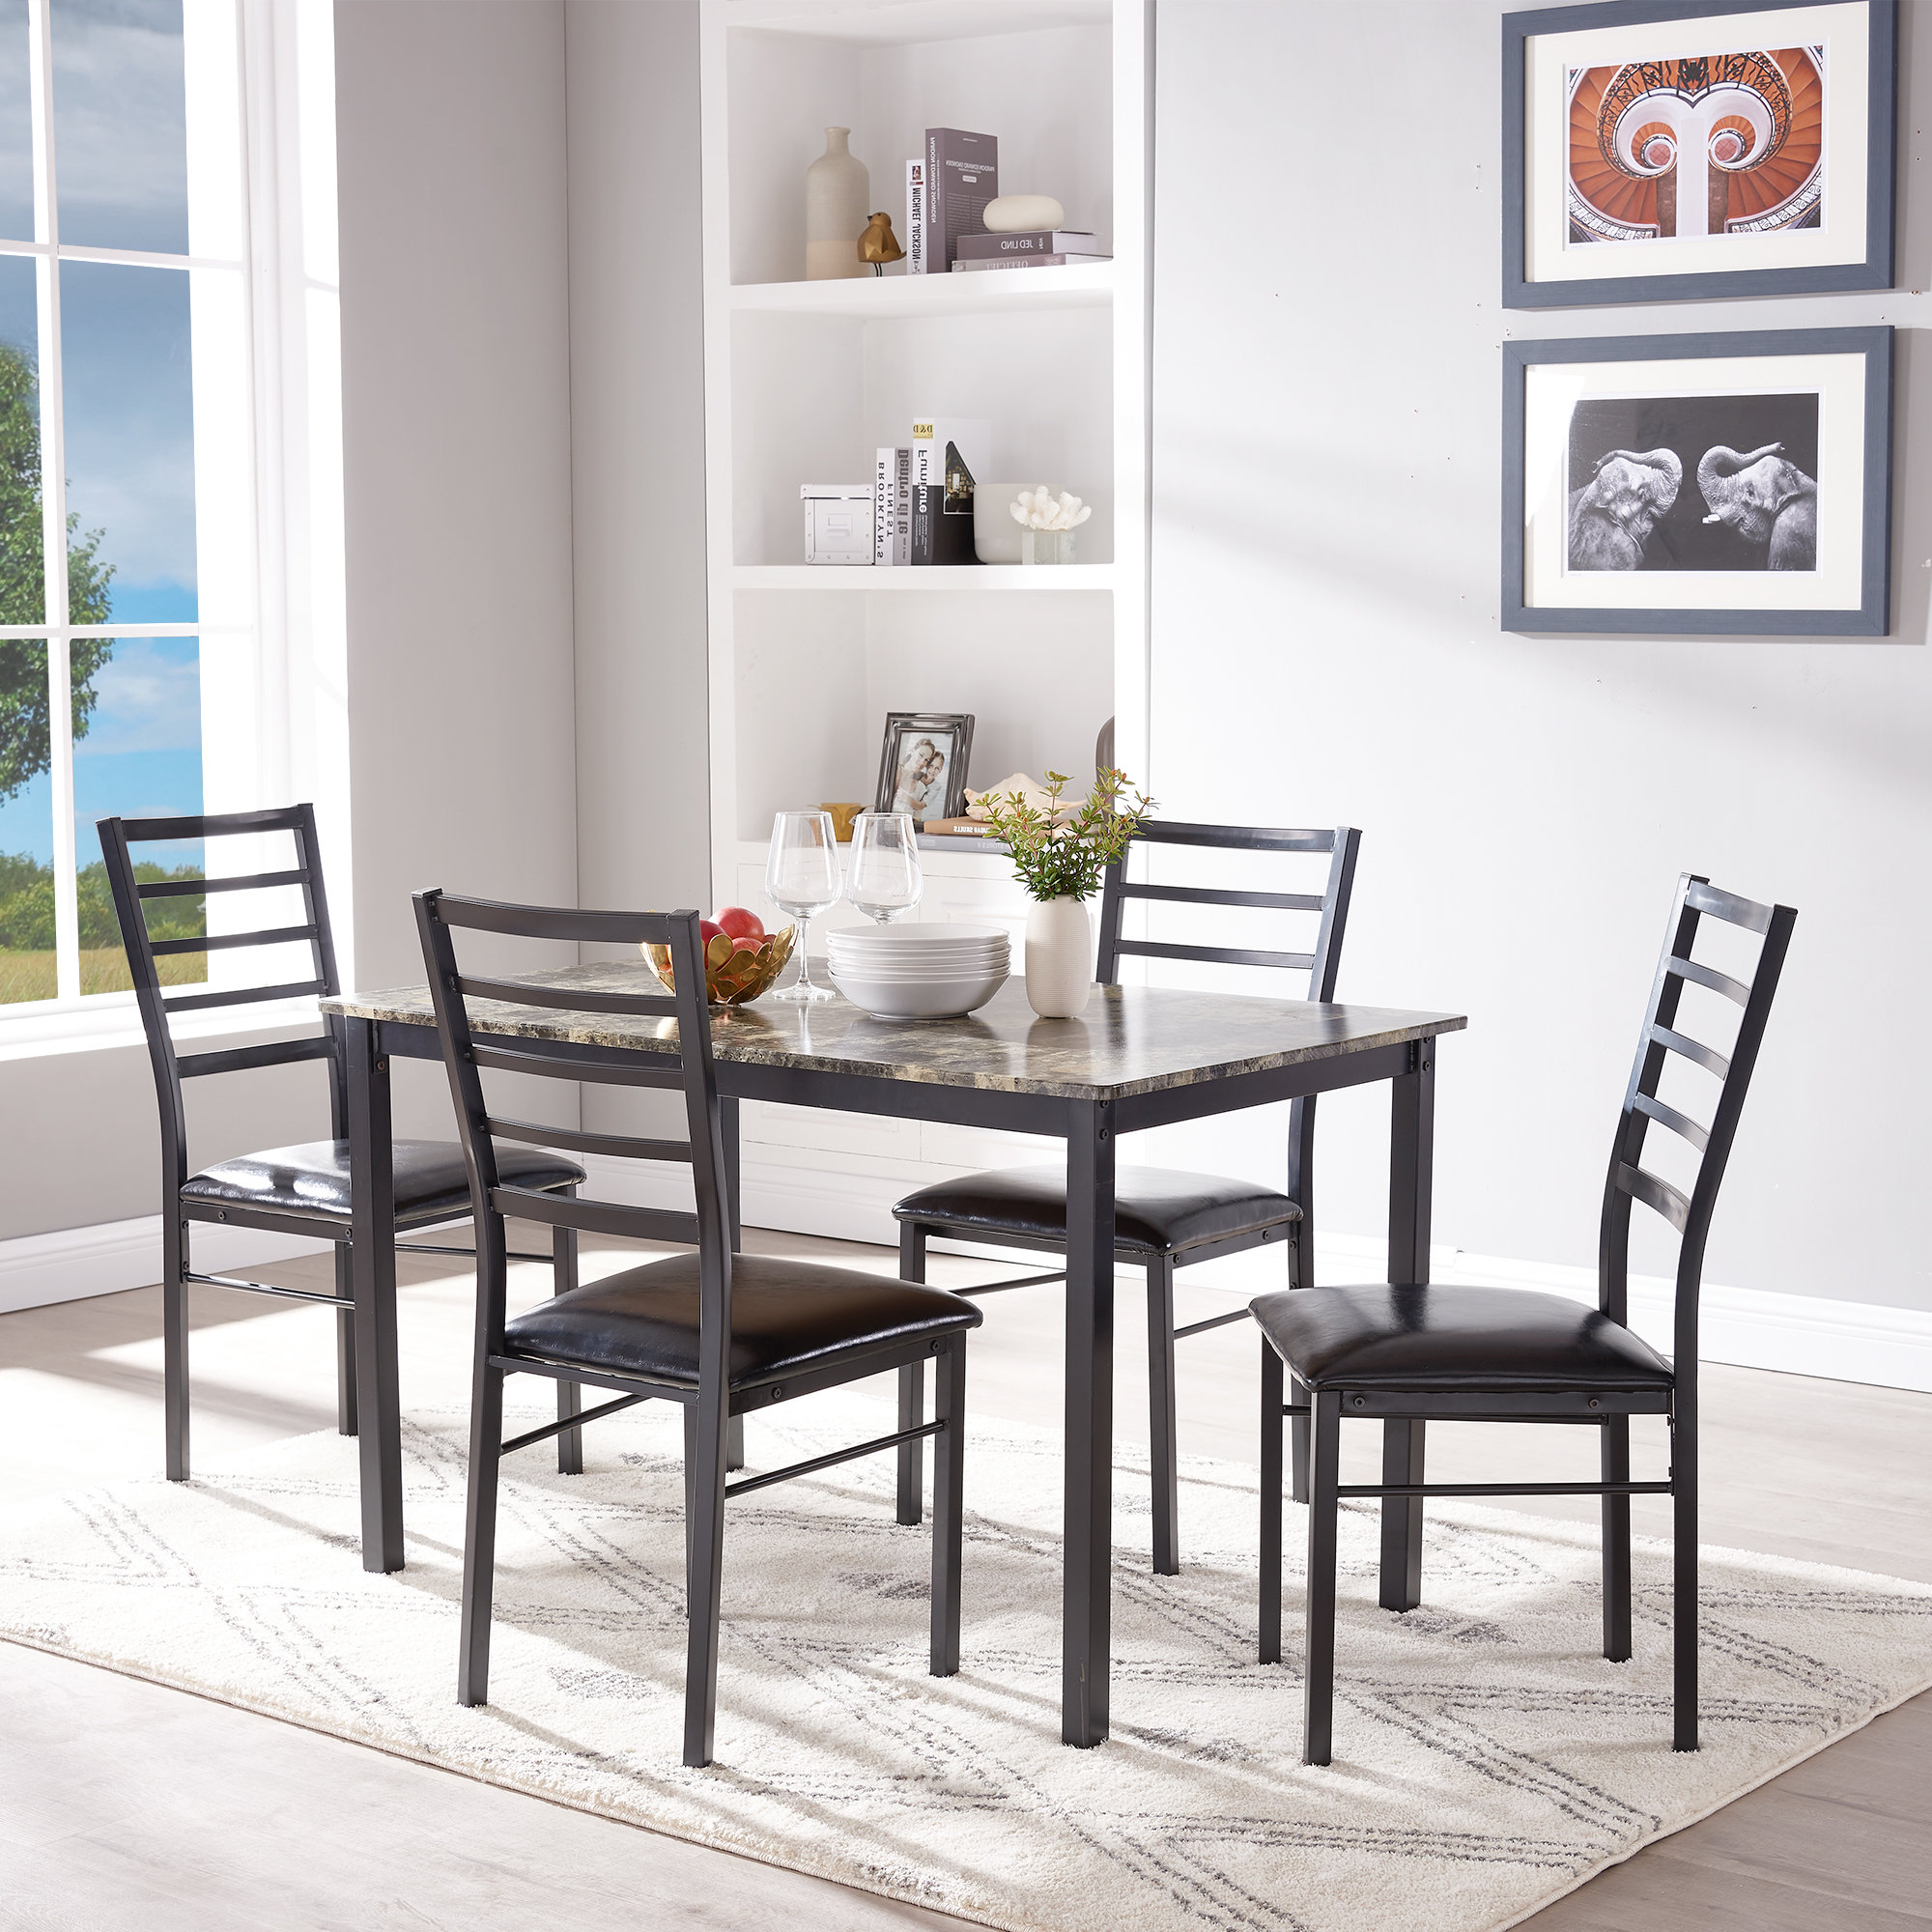 Ebay Regarding Most Current Casiano 5 Piece Dining Sets (View 9 of 25)